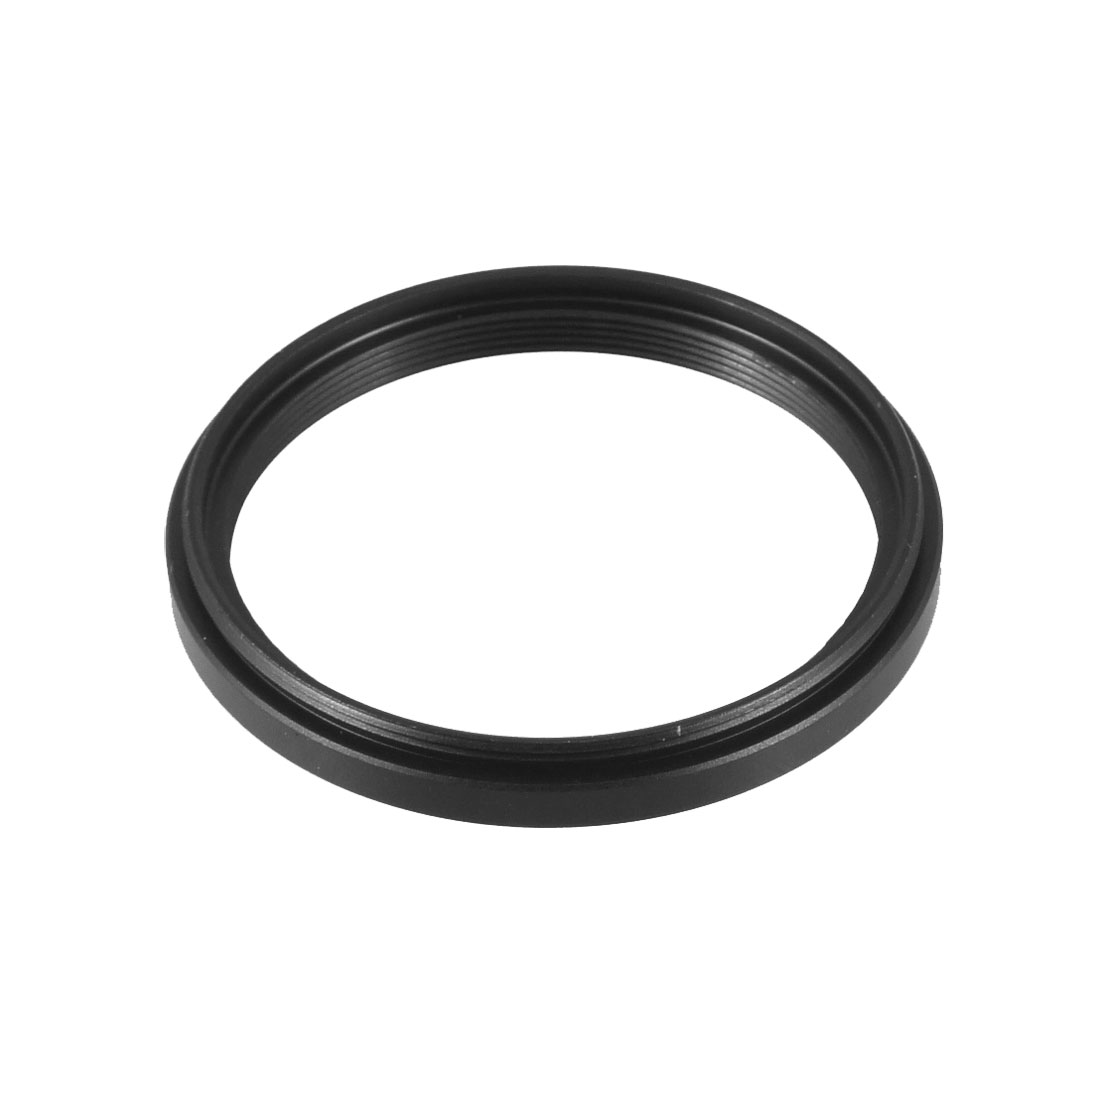 52-46mm 52mm to 46mm Step Down Ring Filter Adapter for Camera